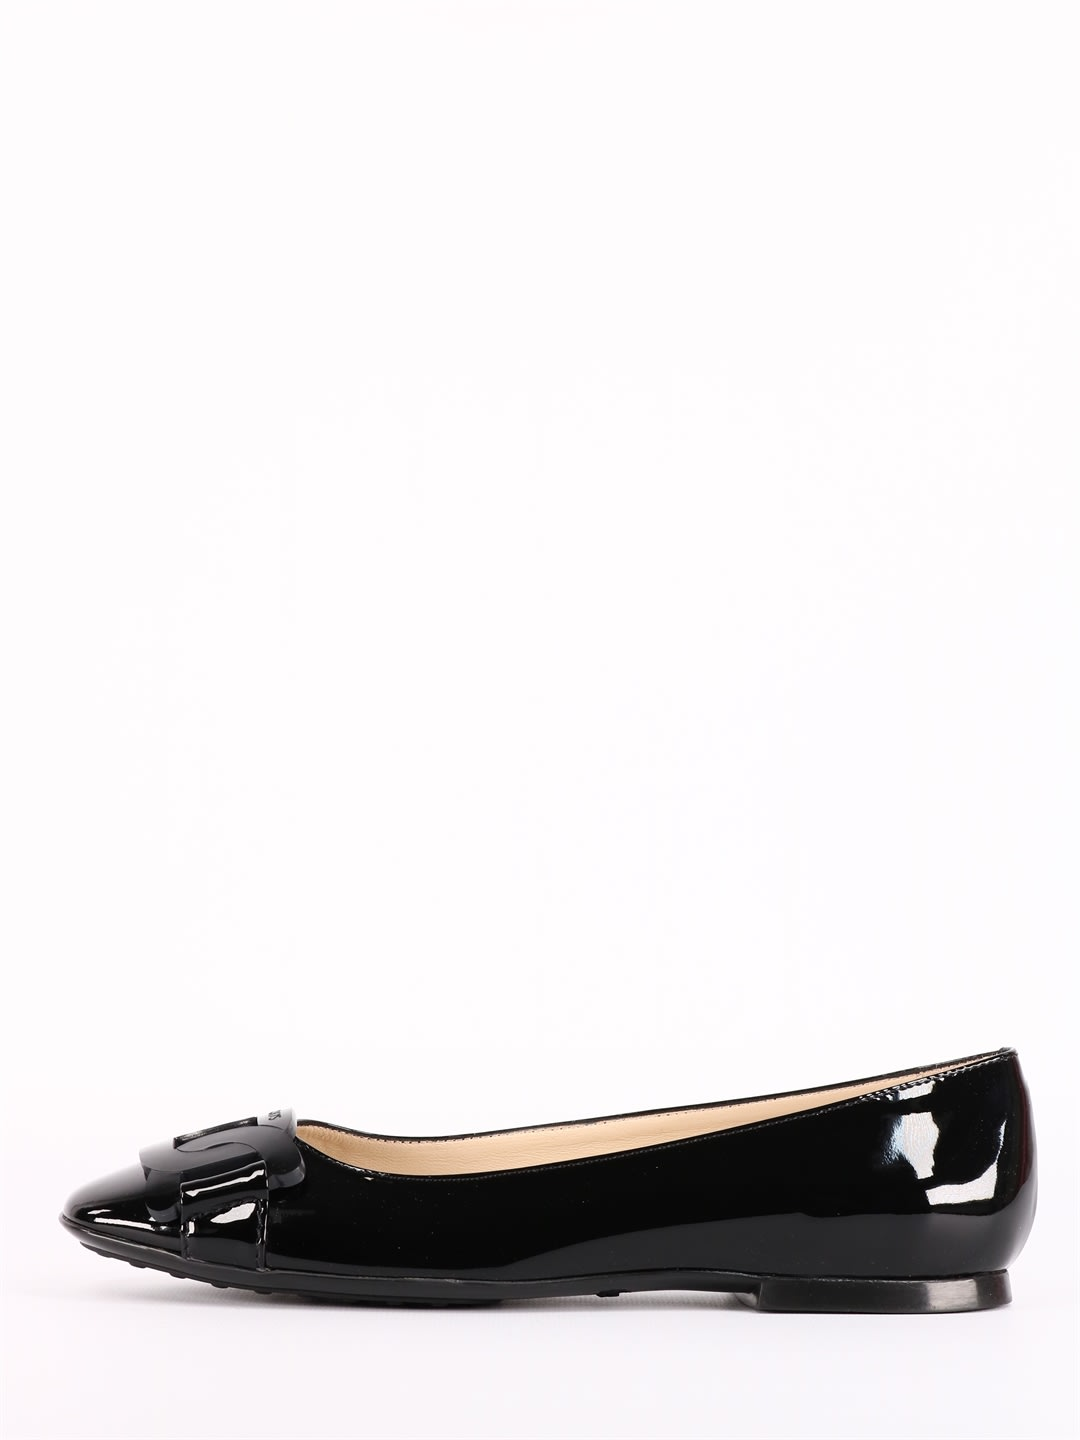 Buy Tods Chain Ballerina Black online, shop Tods shoes with free shipping